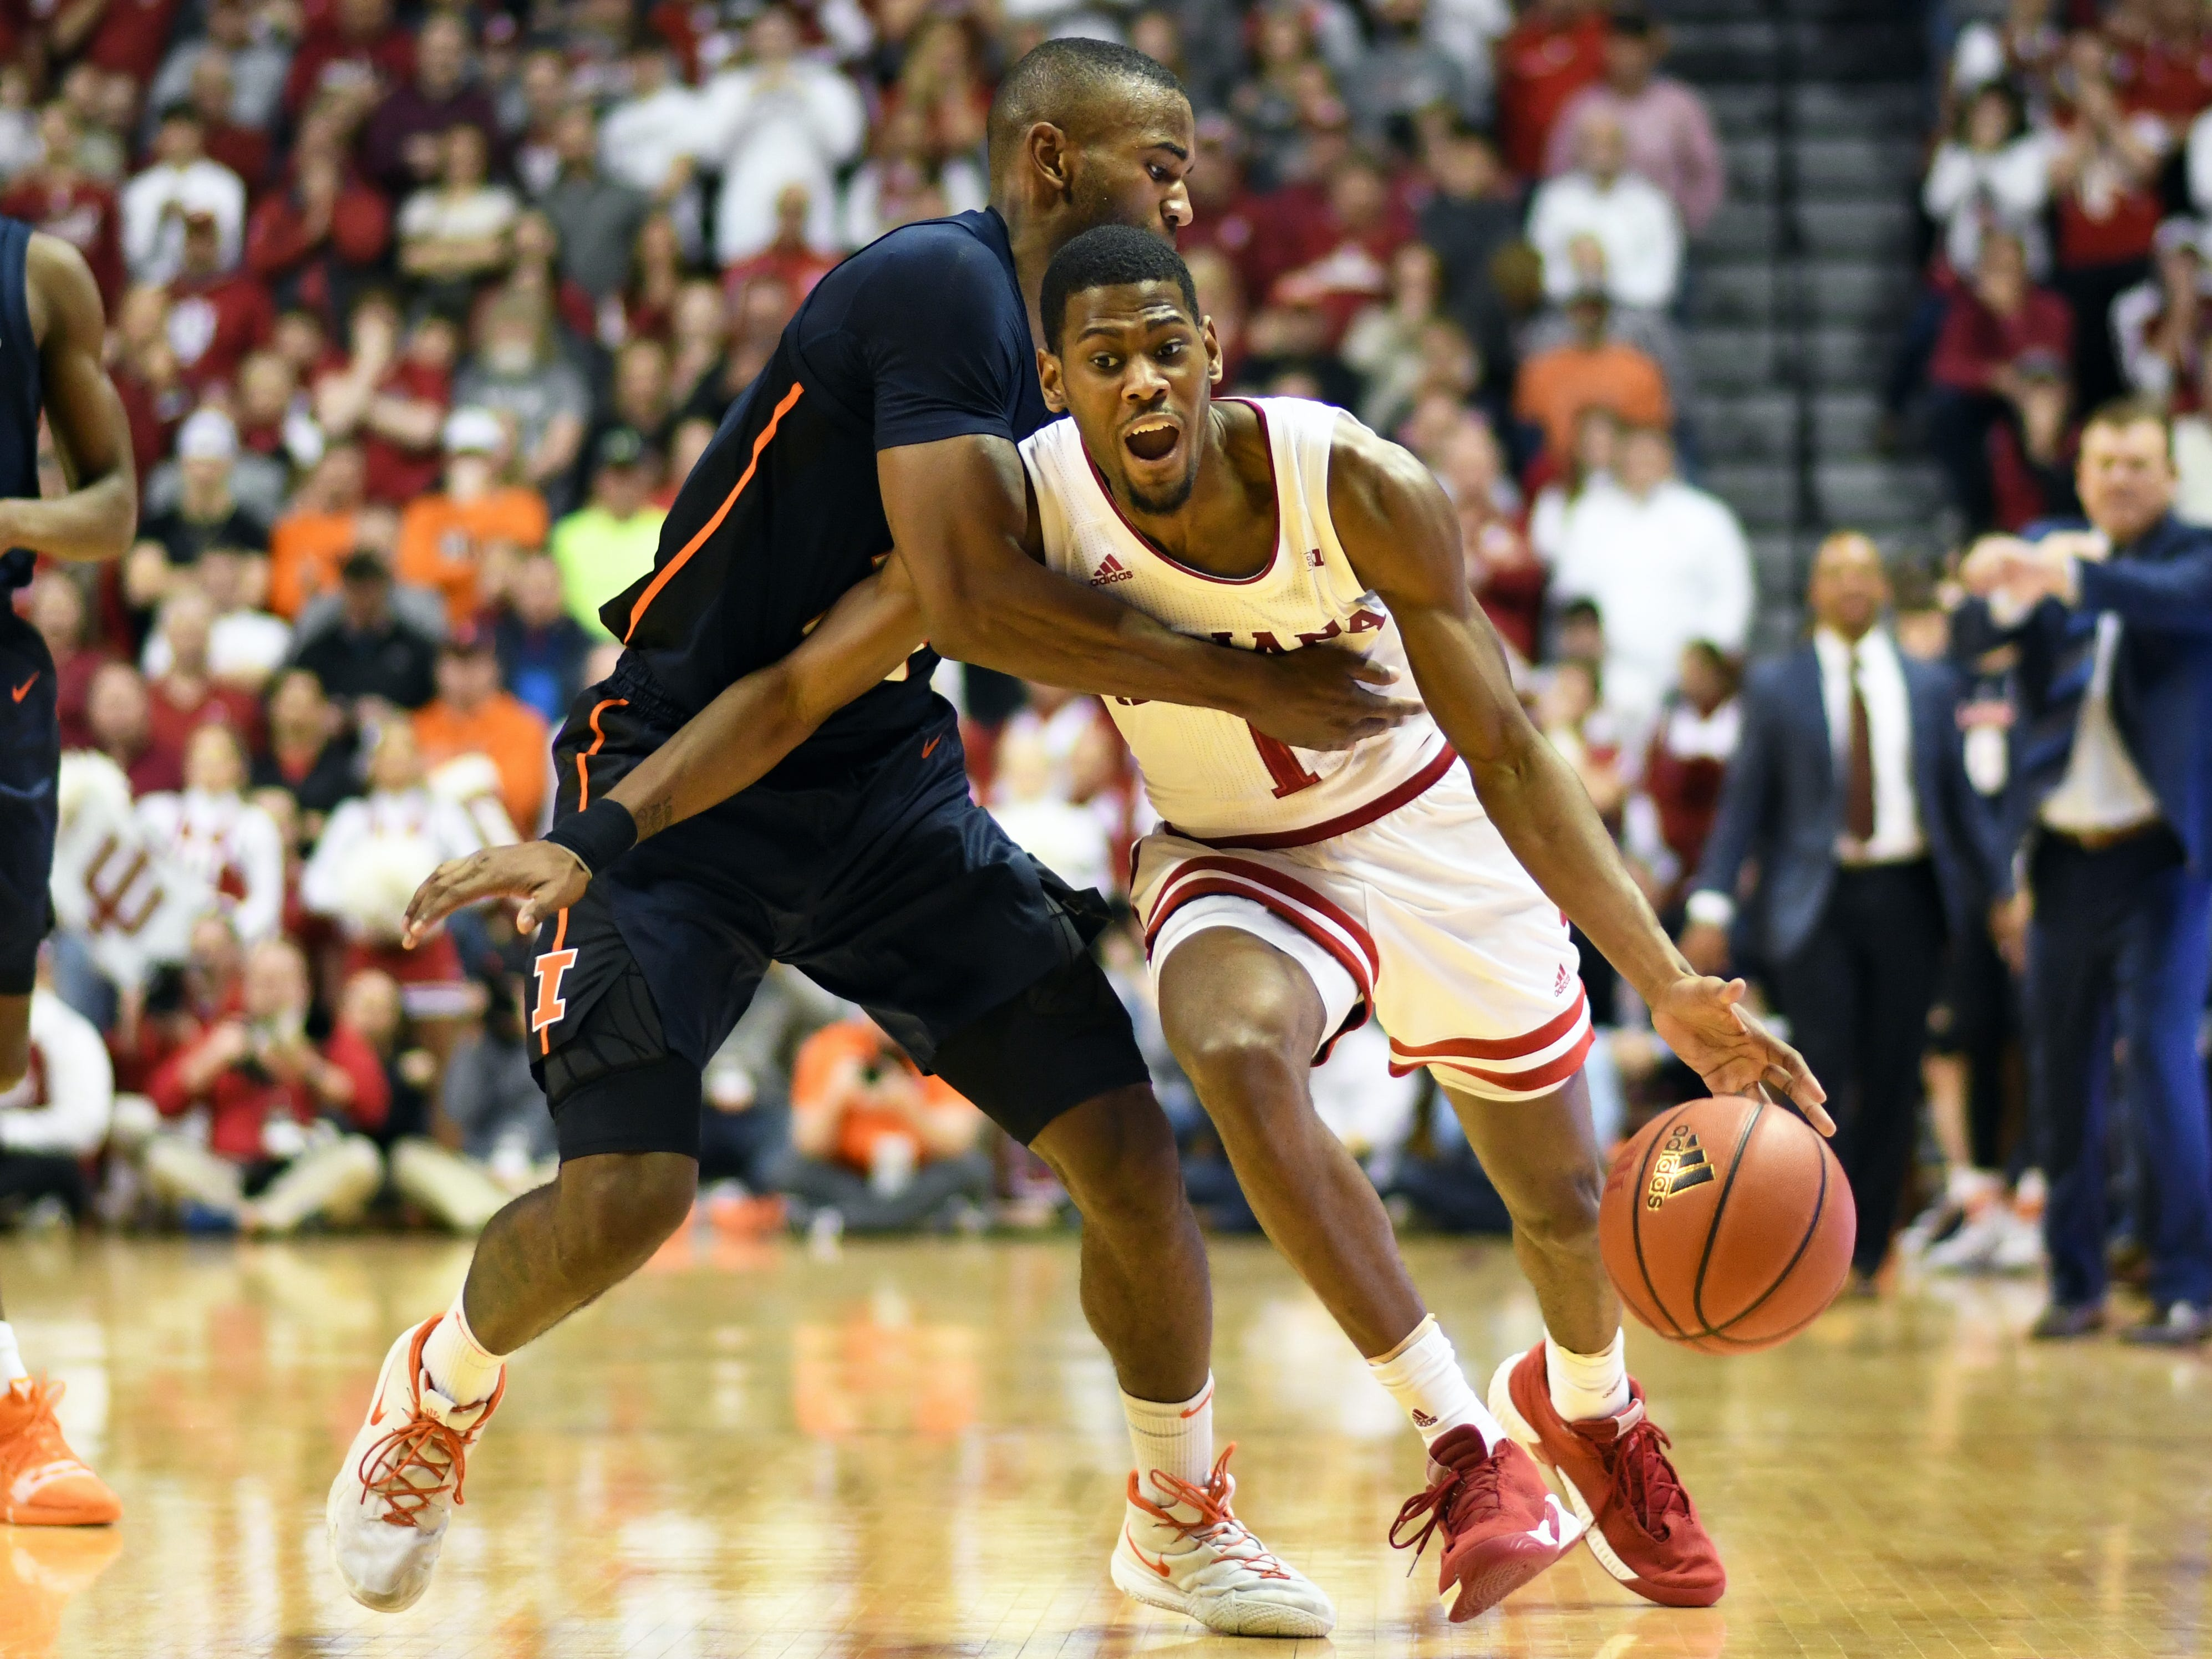 Indiana Hoosiers guard Al Durham (1) is fouled during the game against Illinois at Simon Skjodt Assembly Hall in Bloomington, Ind., on Thursday, Jan. 3, 2019.